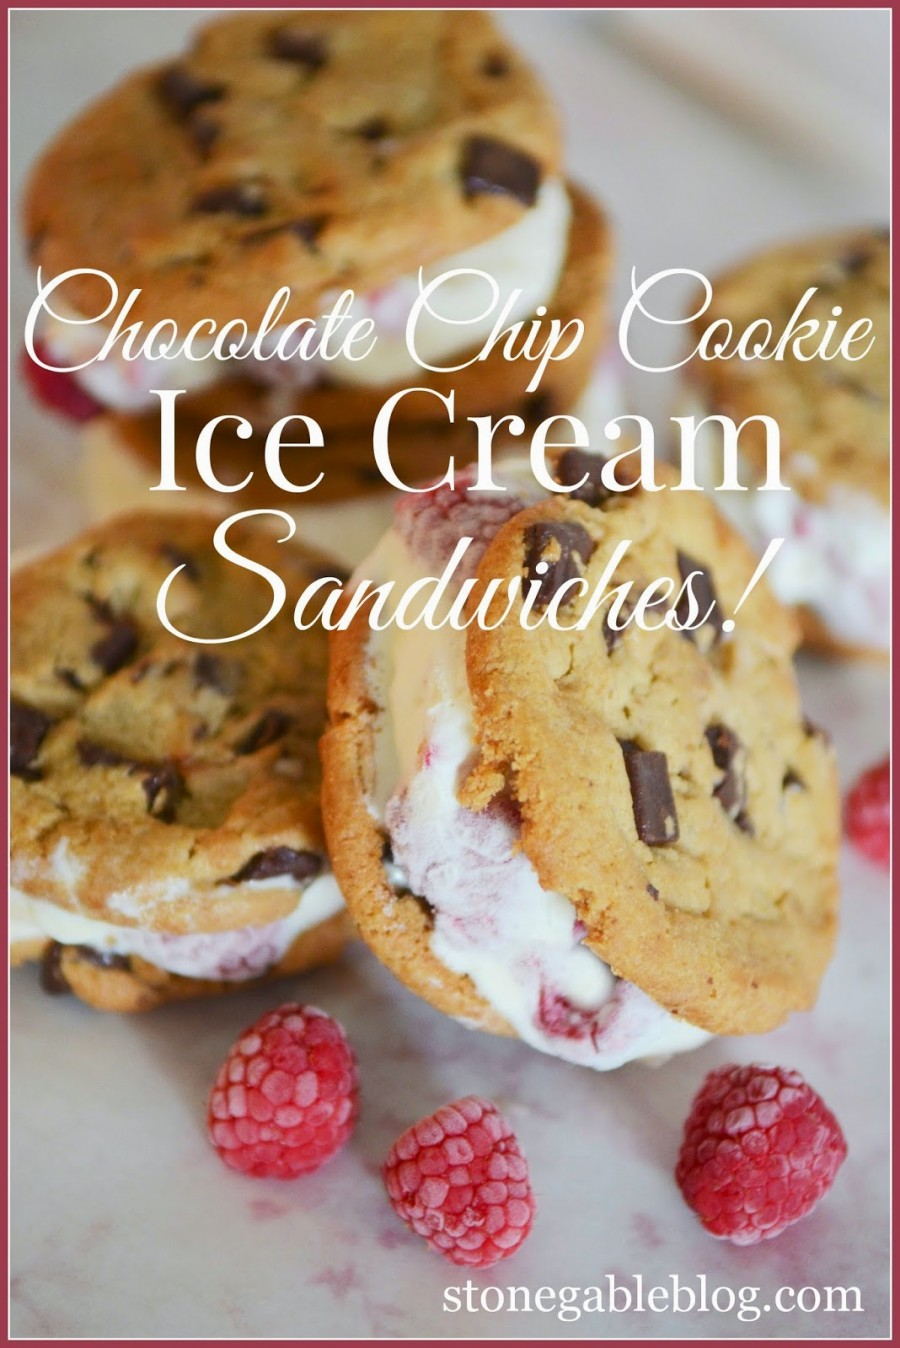 THE BEST AND EASIEST COOKIE ICE CREAM SANDWICH YOU WILL EVER EAT!